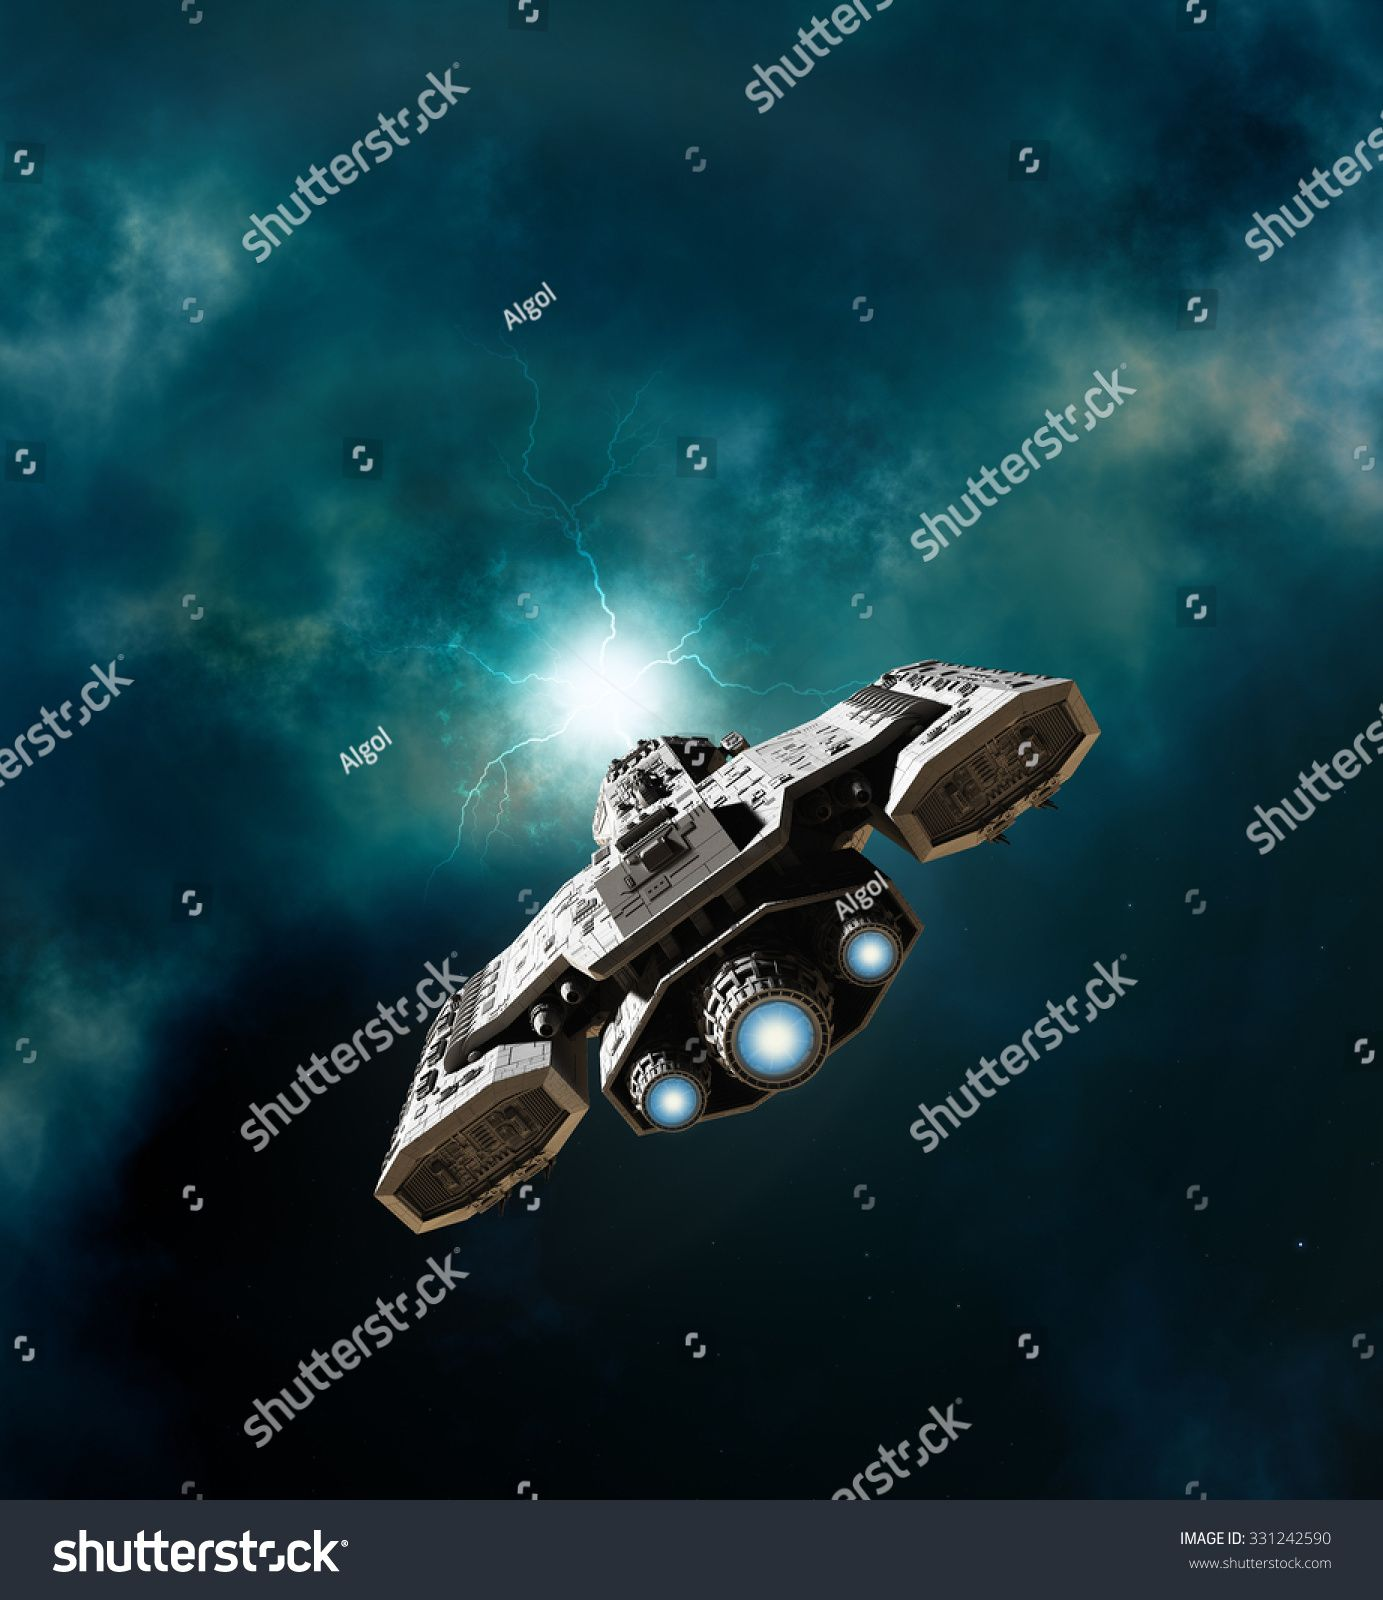 Science fiction illustration of a spaceship about to enter a wormhole in deep space 3d digitally rendered illustration